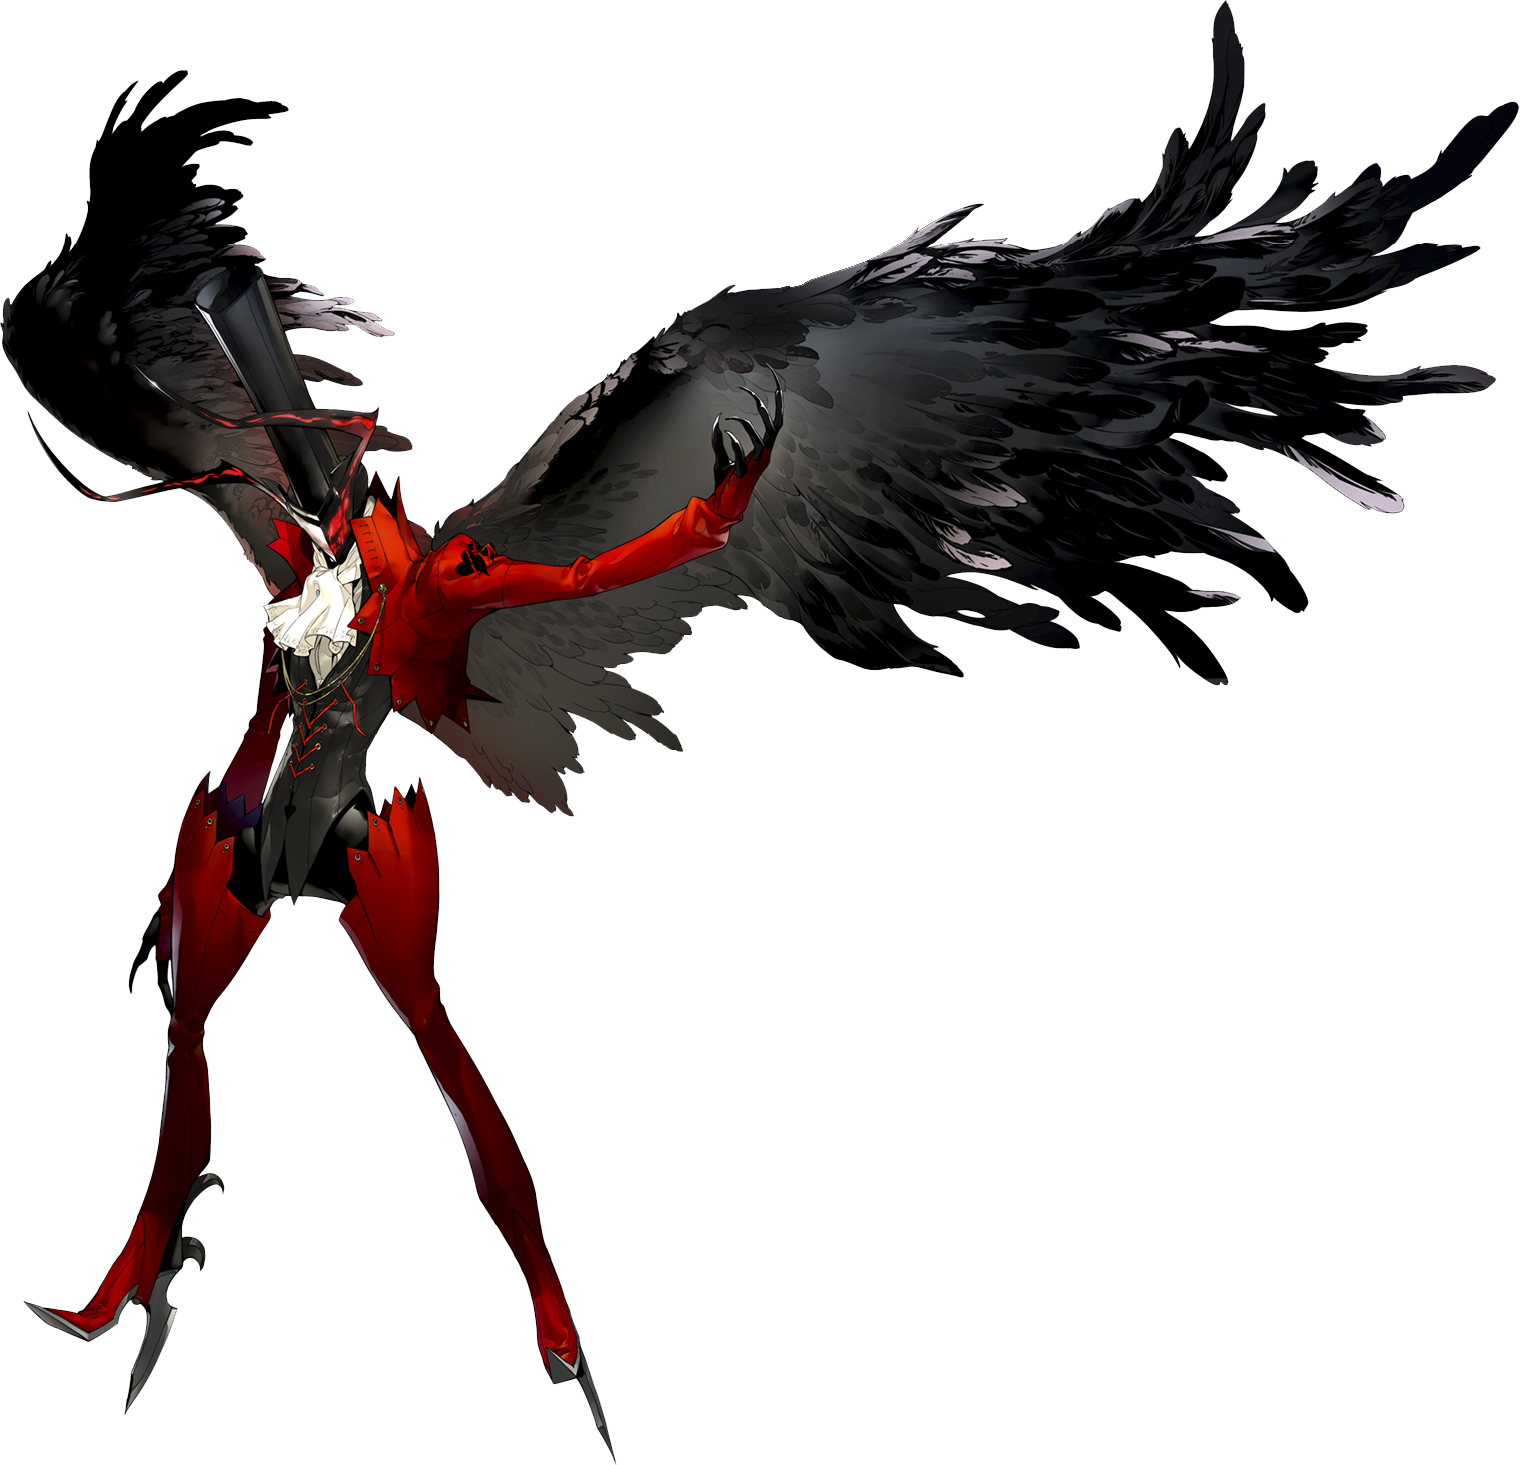 persona drawing arsene